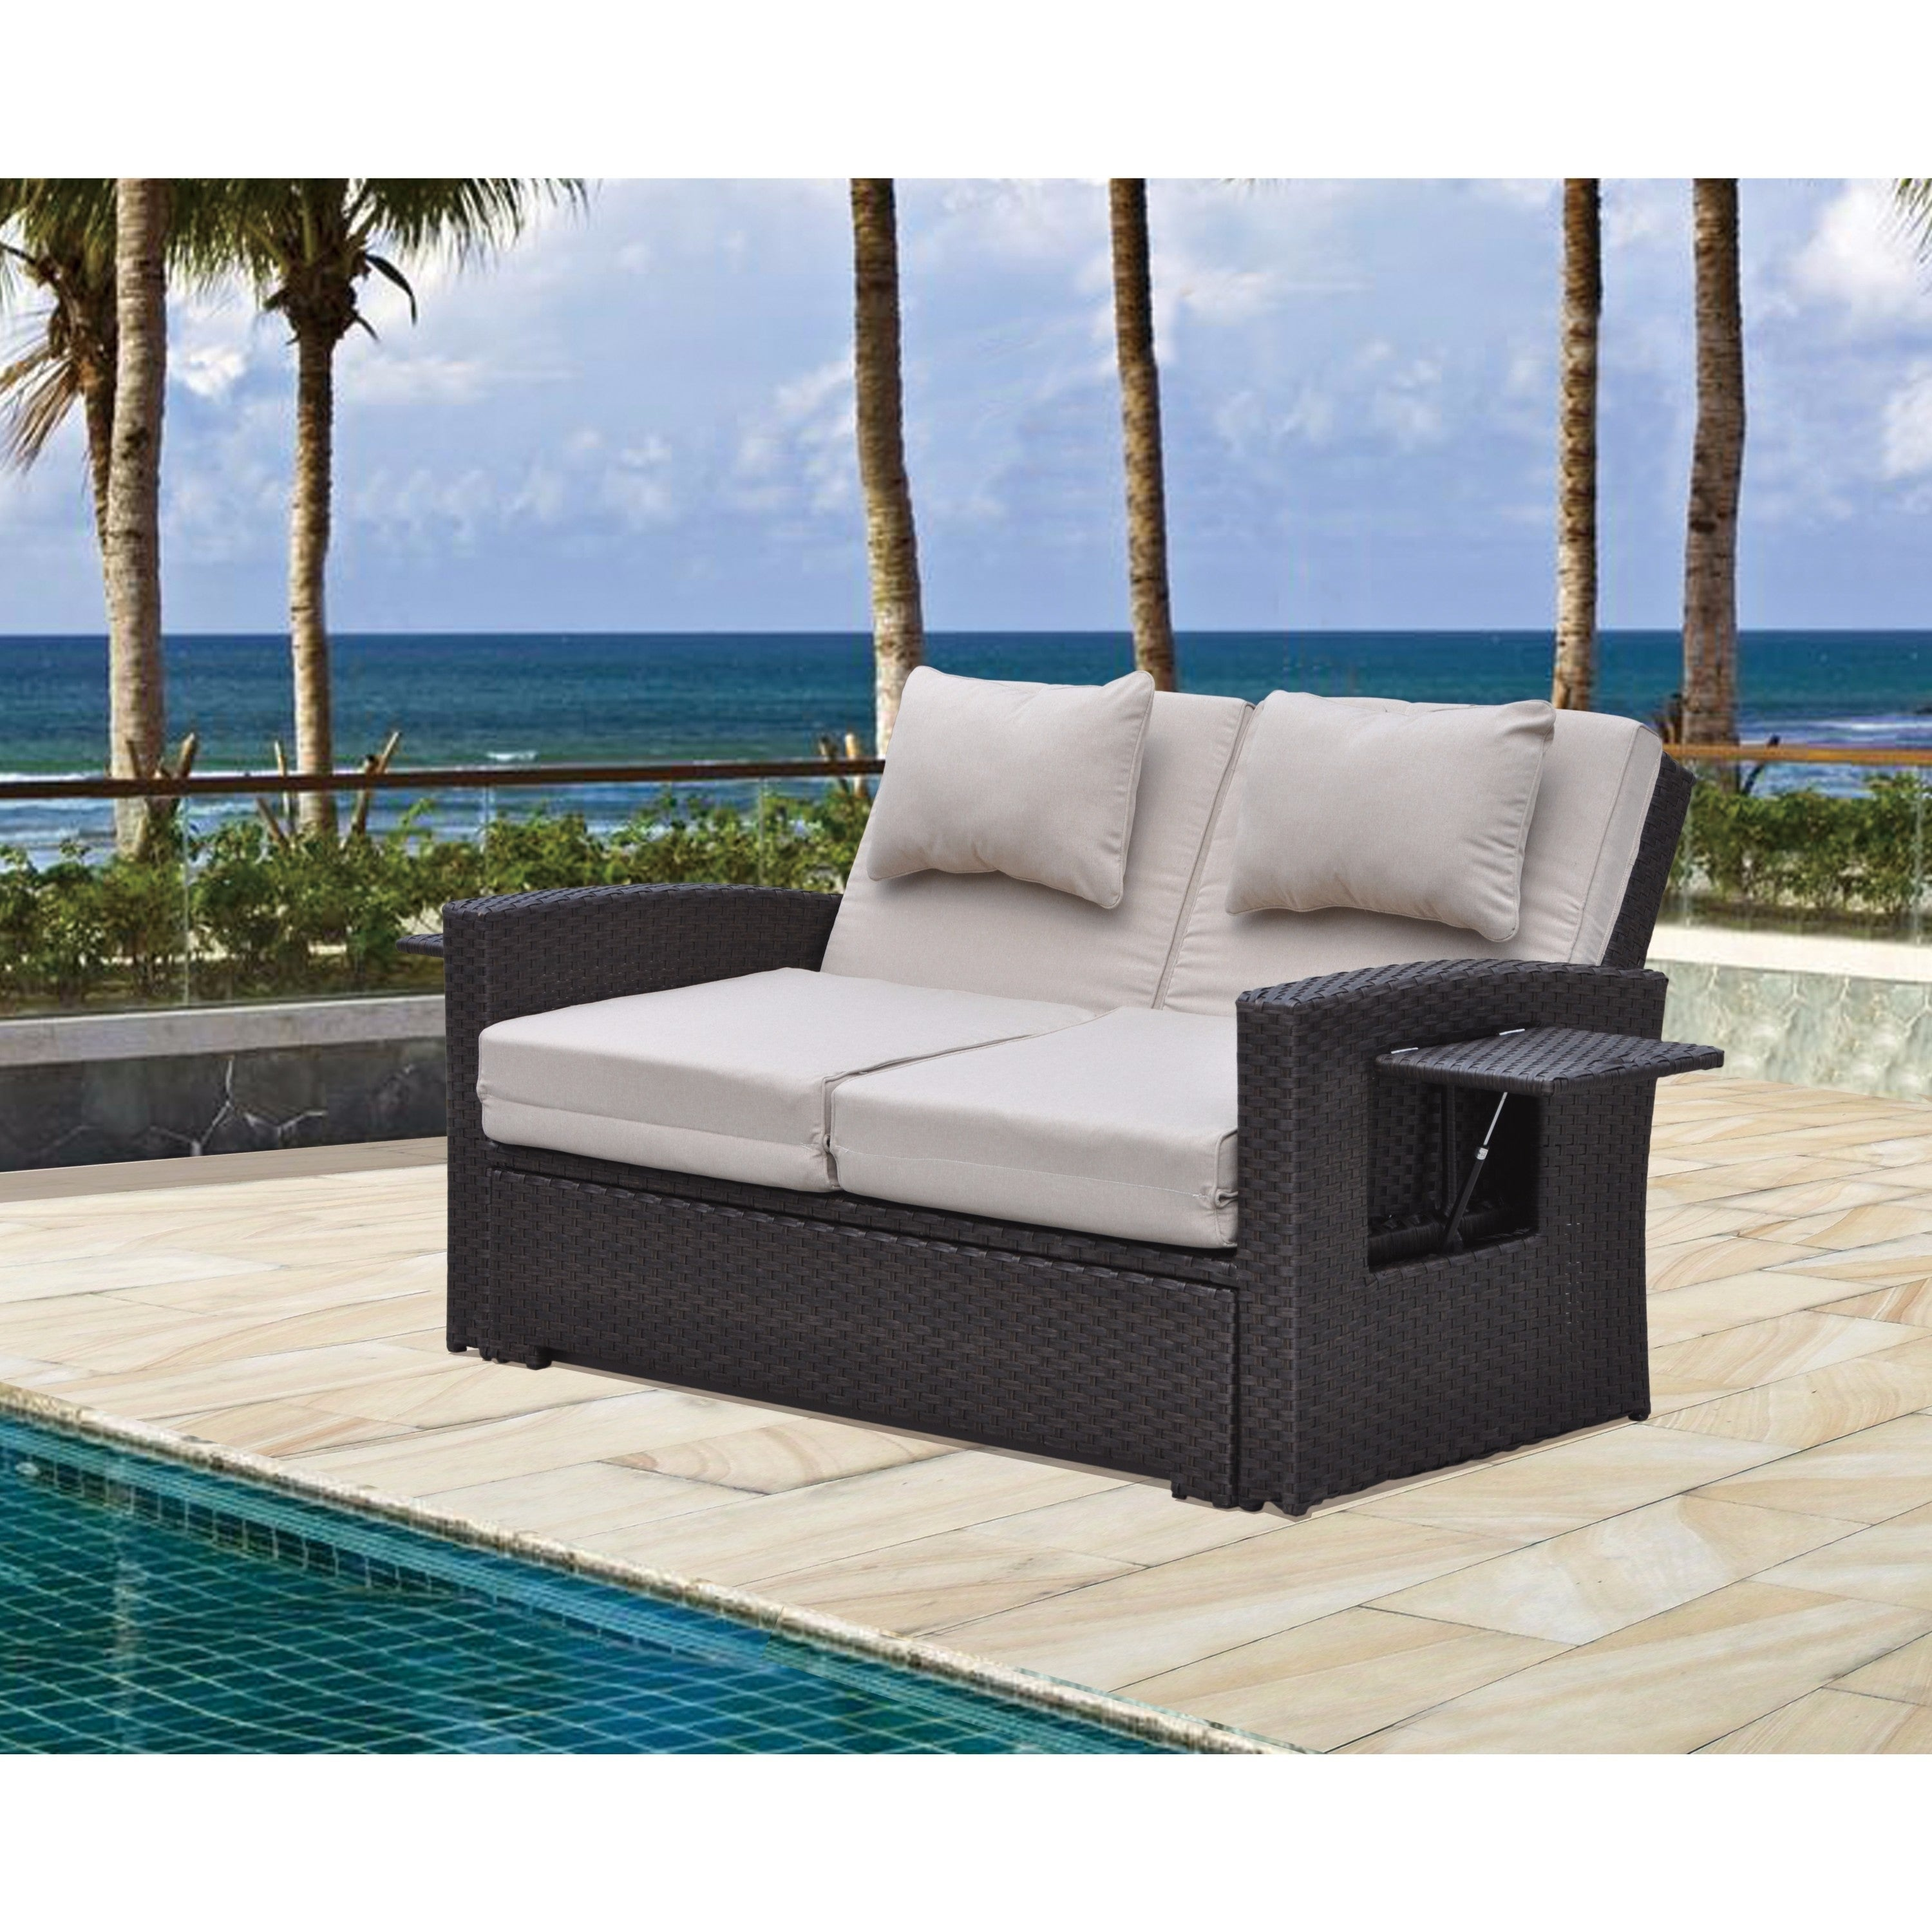 Shop courtyard casual miranda outdoor loveseat to daybed combo w cushions free shipping on orders over 45 overstock 17679820